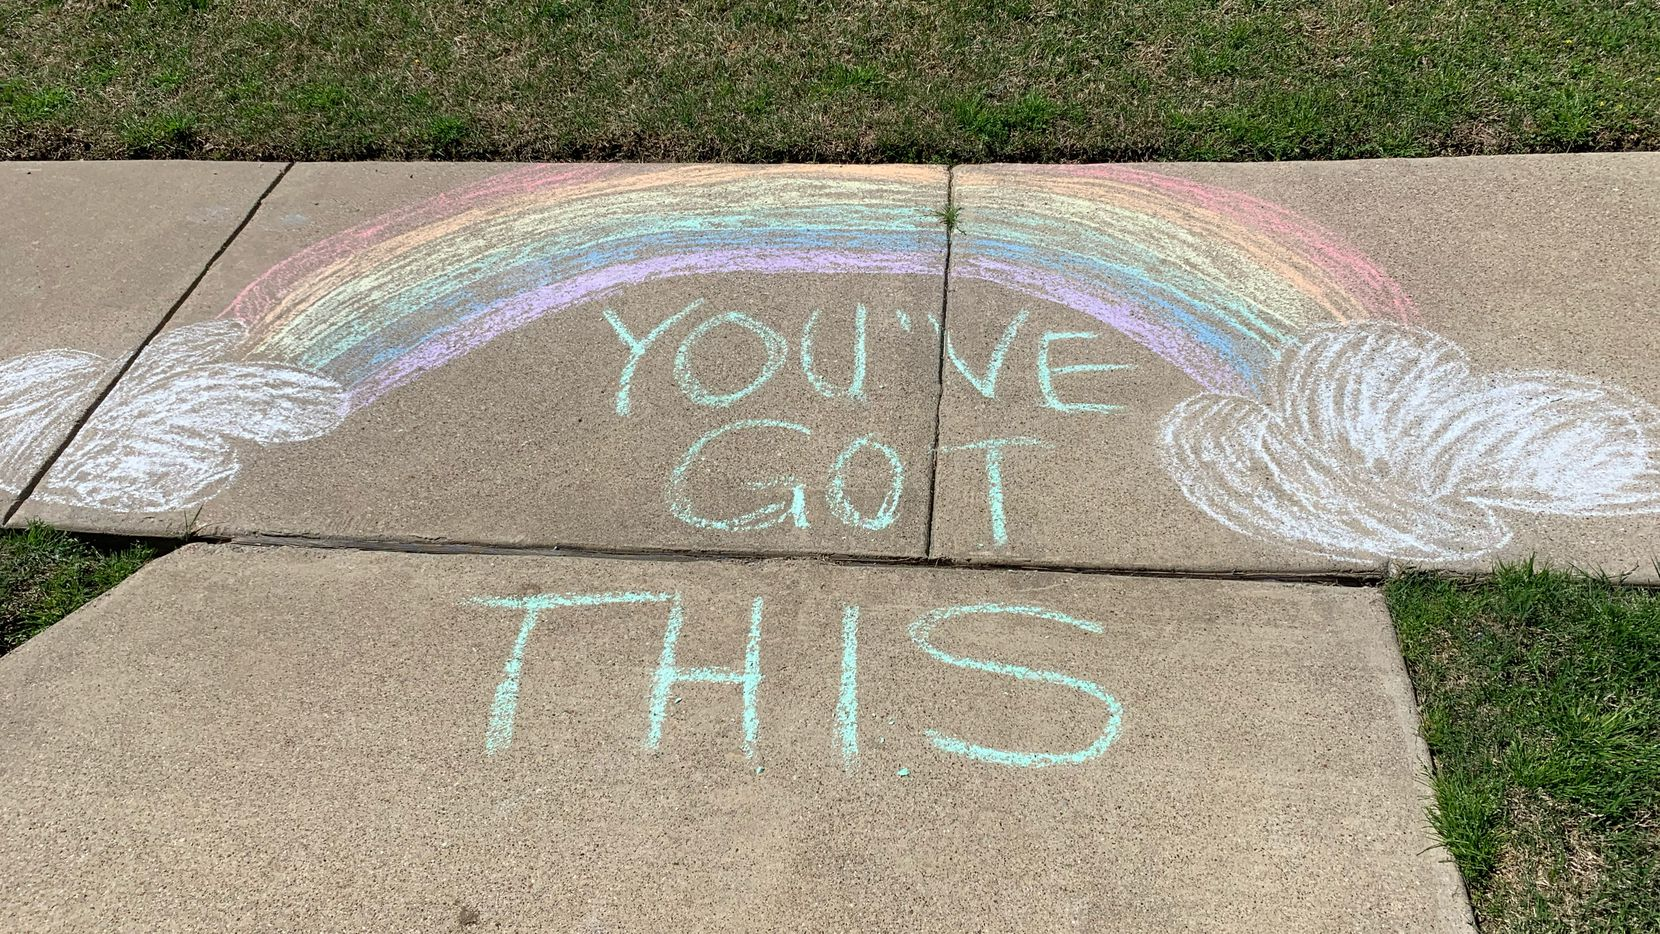 Tyra Damm came across a colorful, encouraging message on a recent walk.